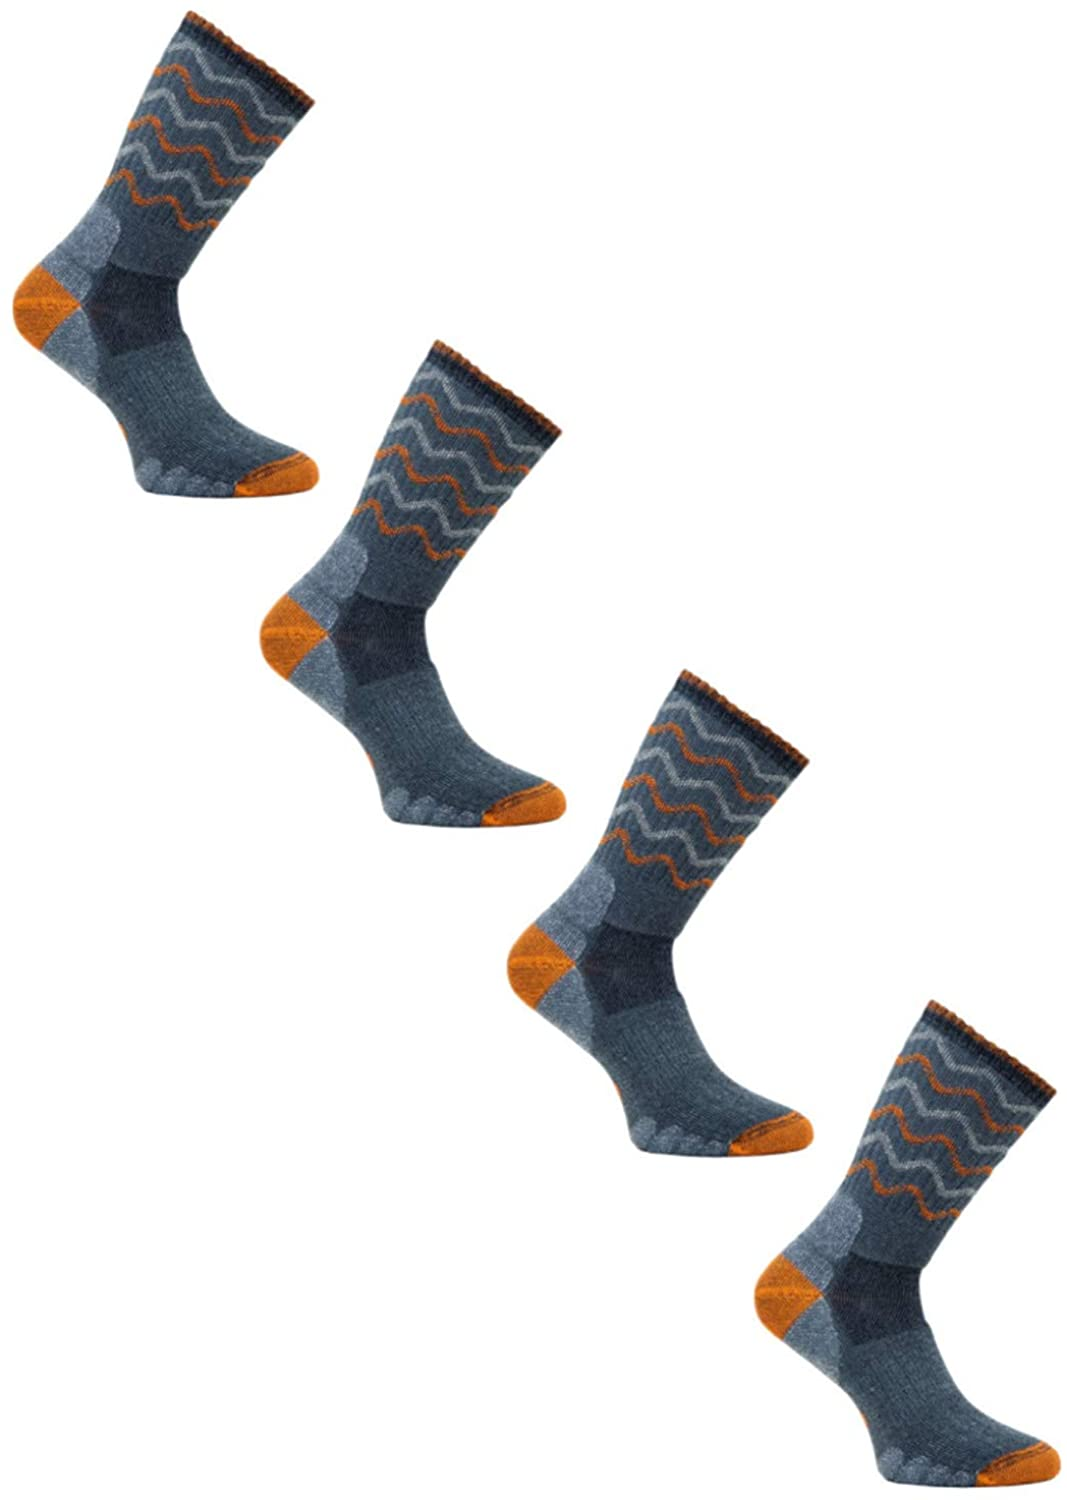 Eurosock Rub - Dark Grey - L 4 Pack